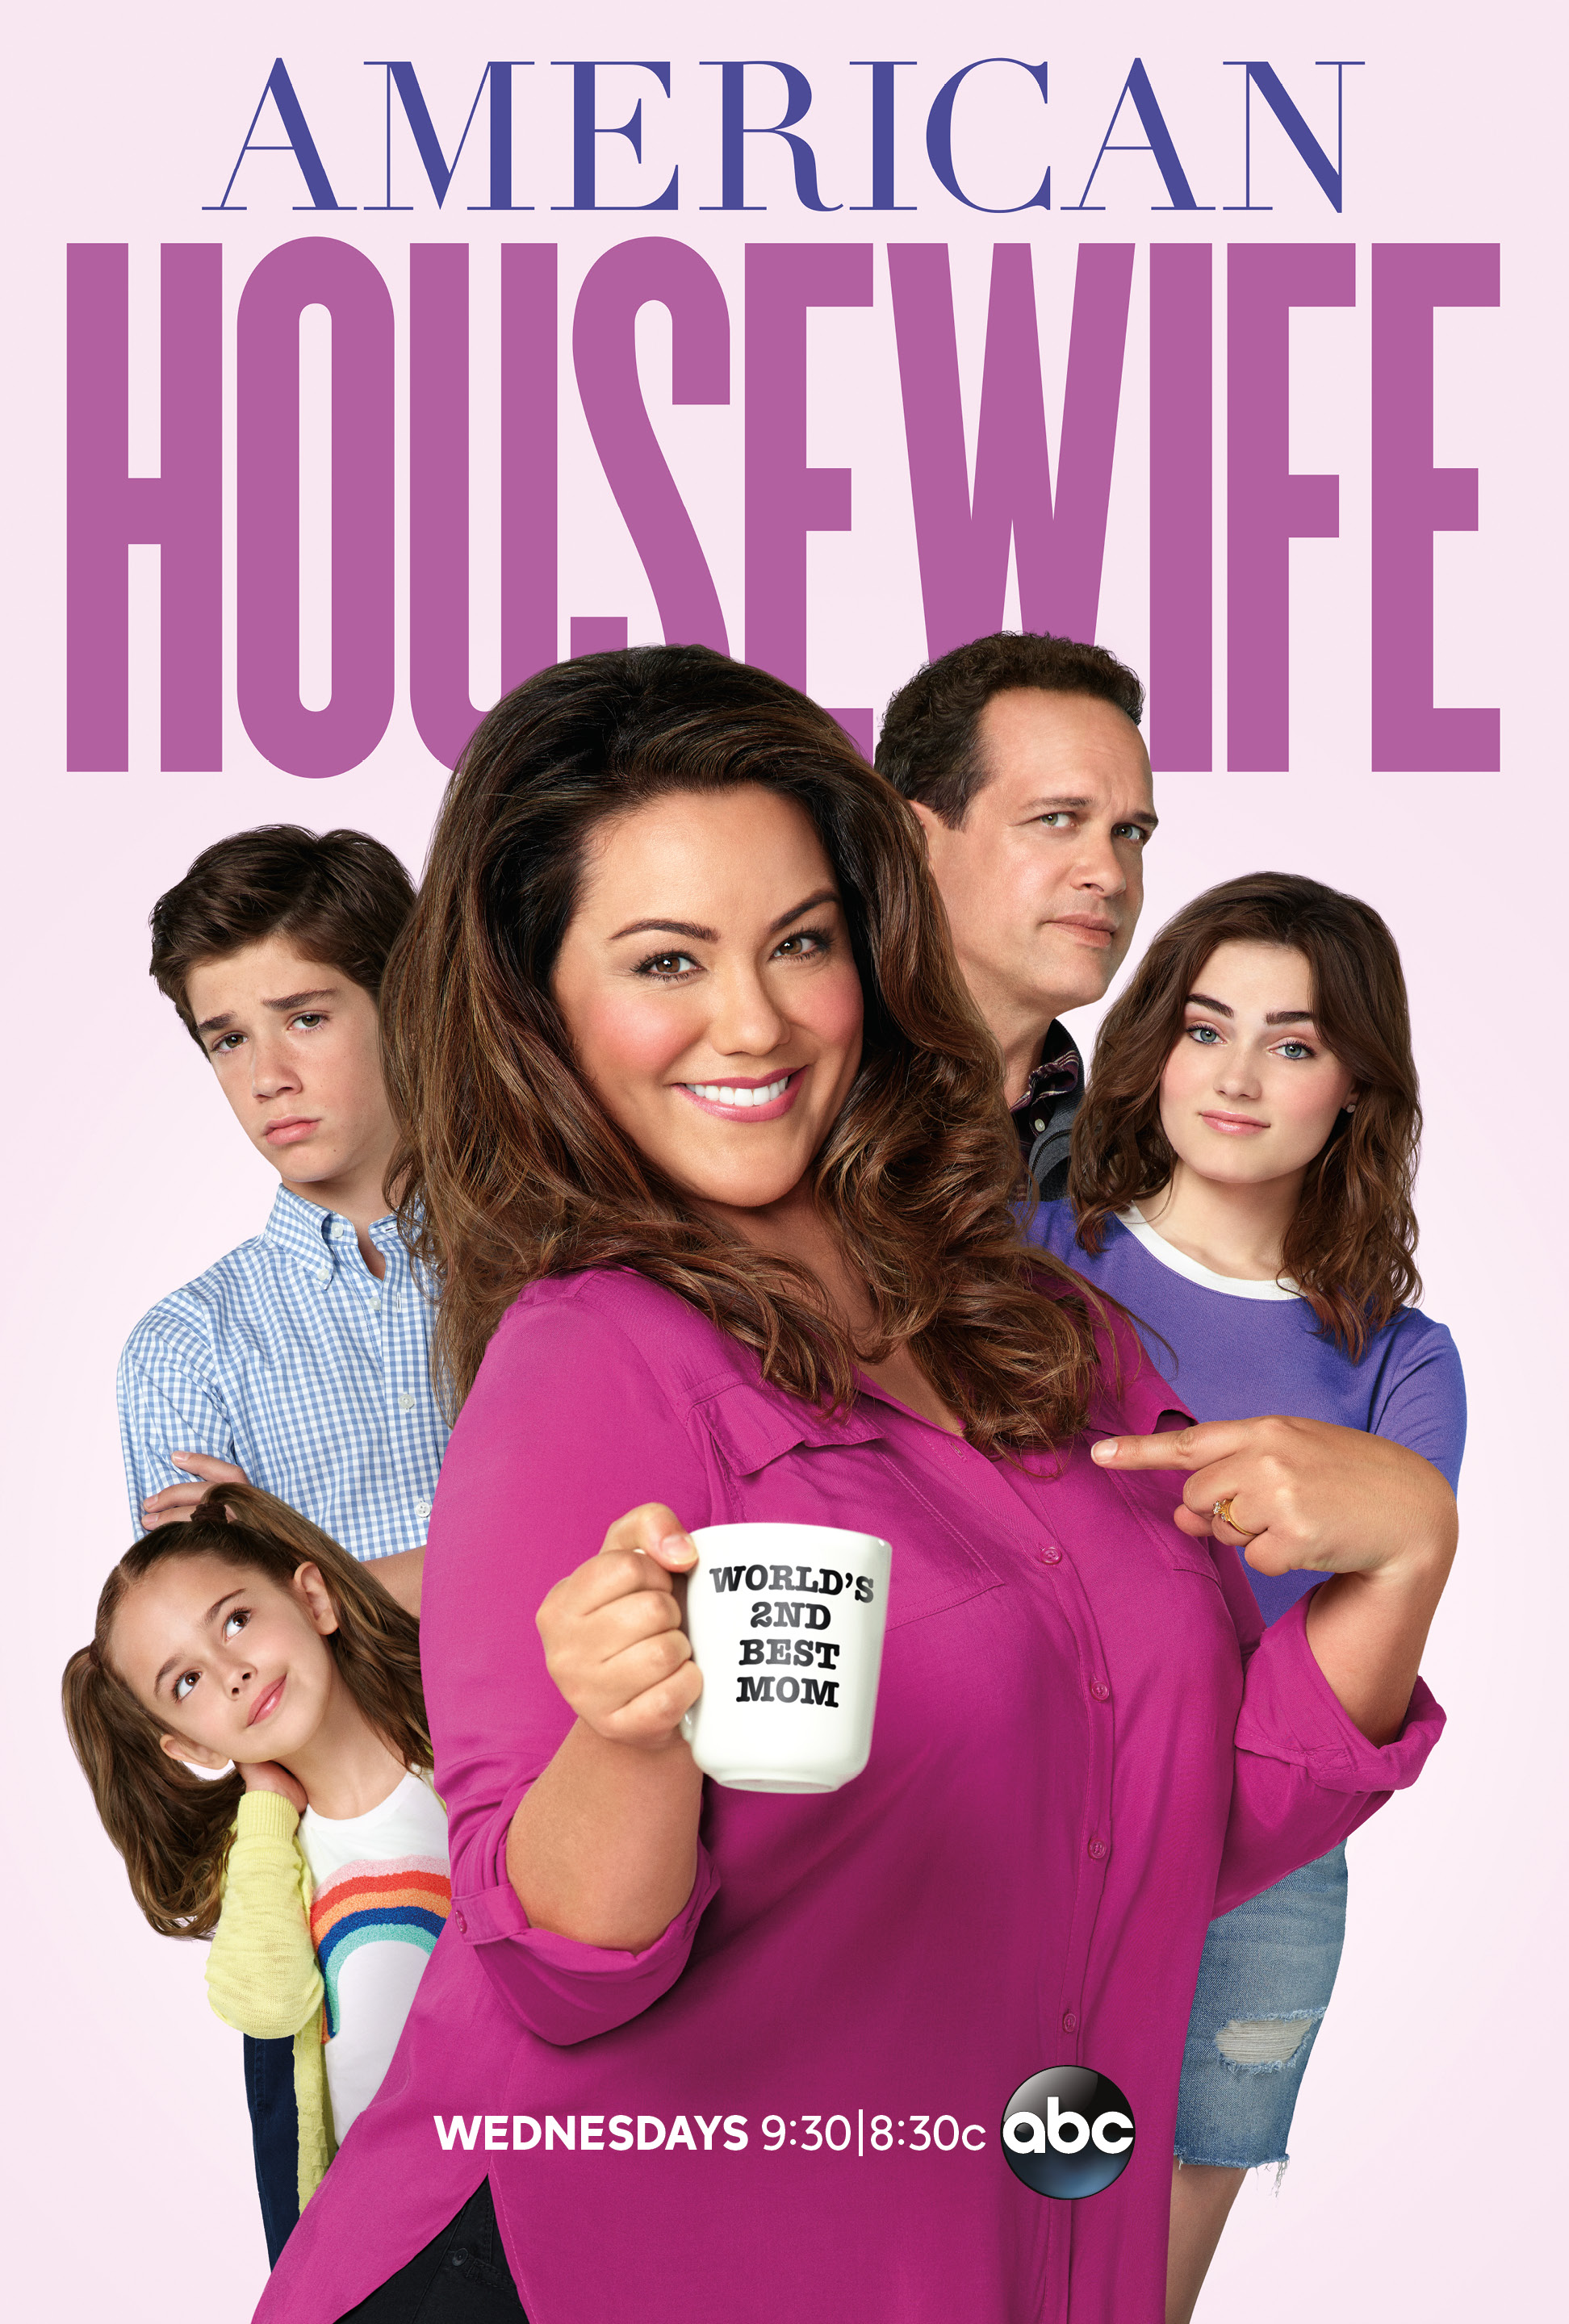 American Housewife - Season 4 Episode 8 - Women in Business